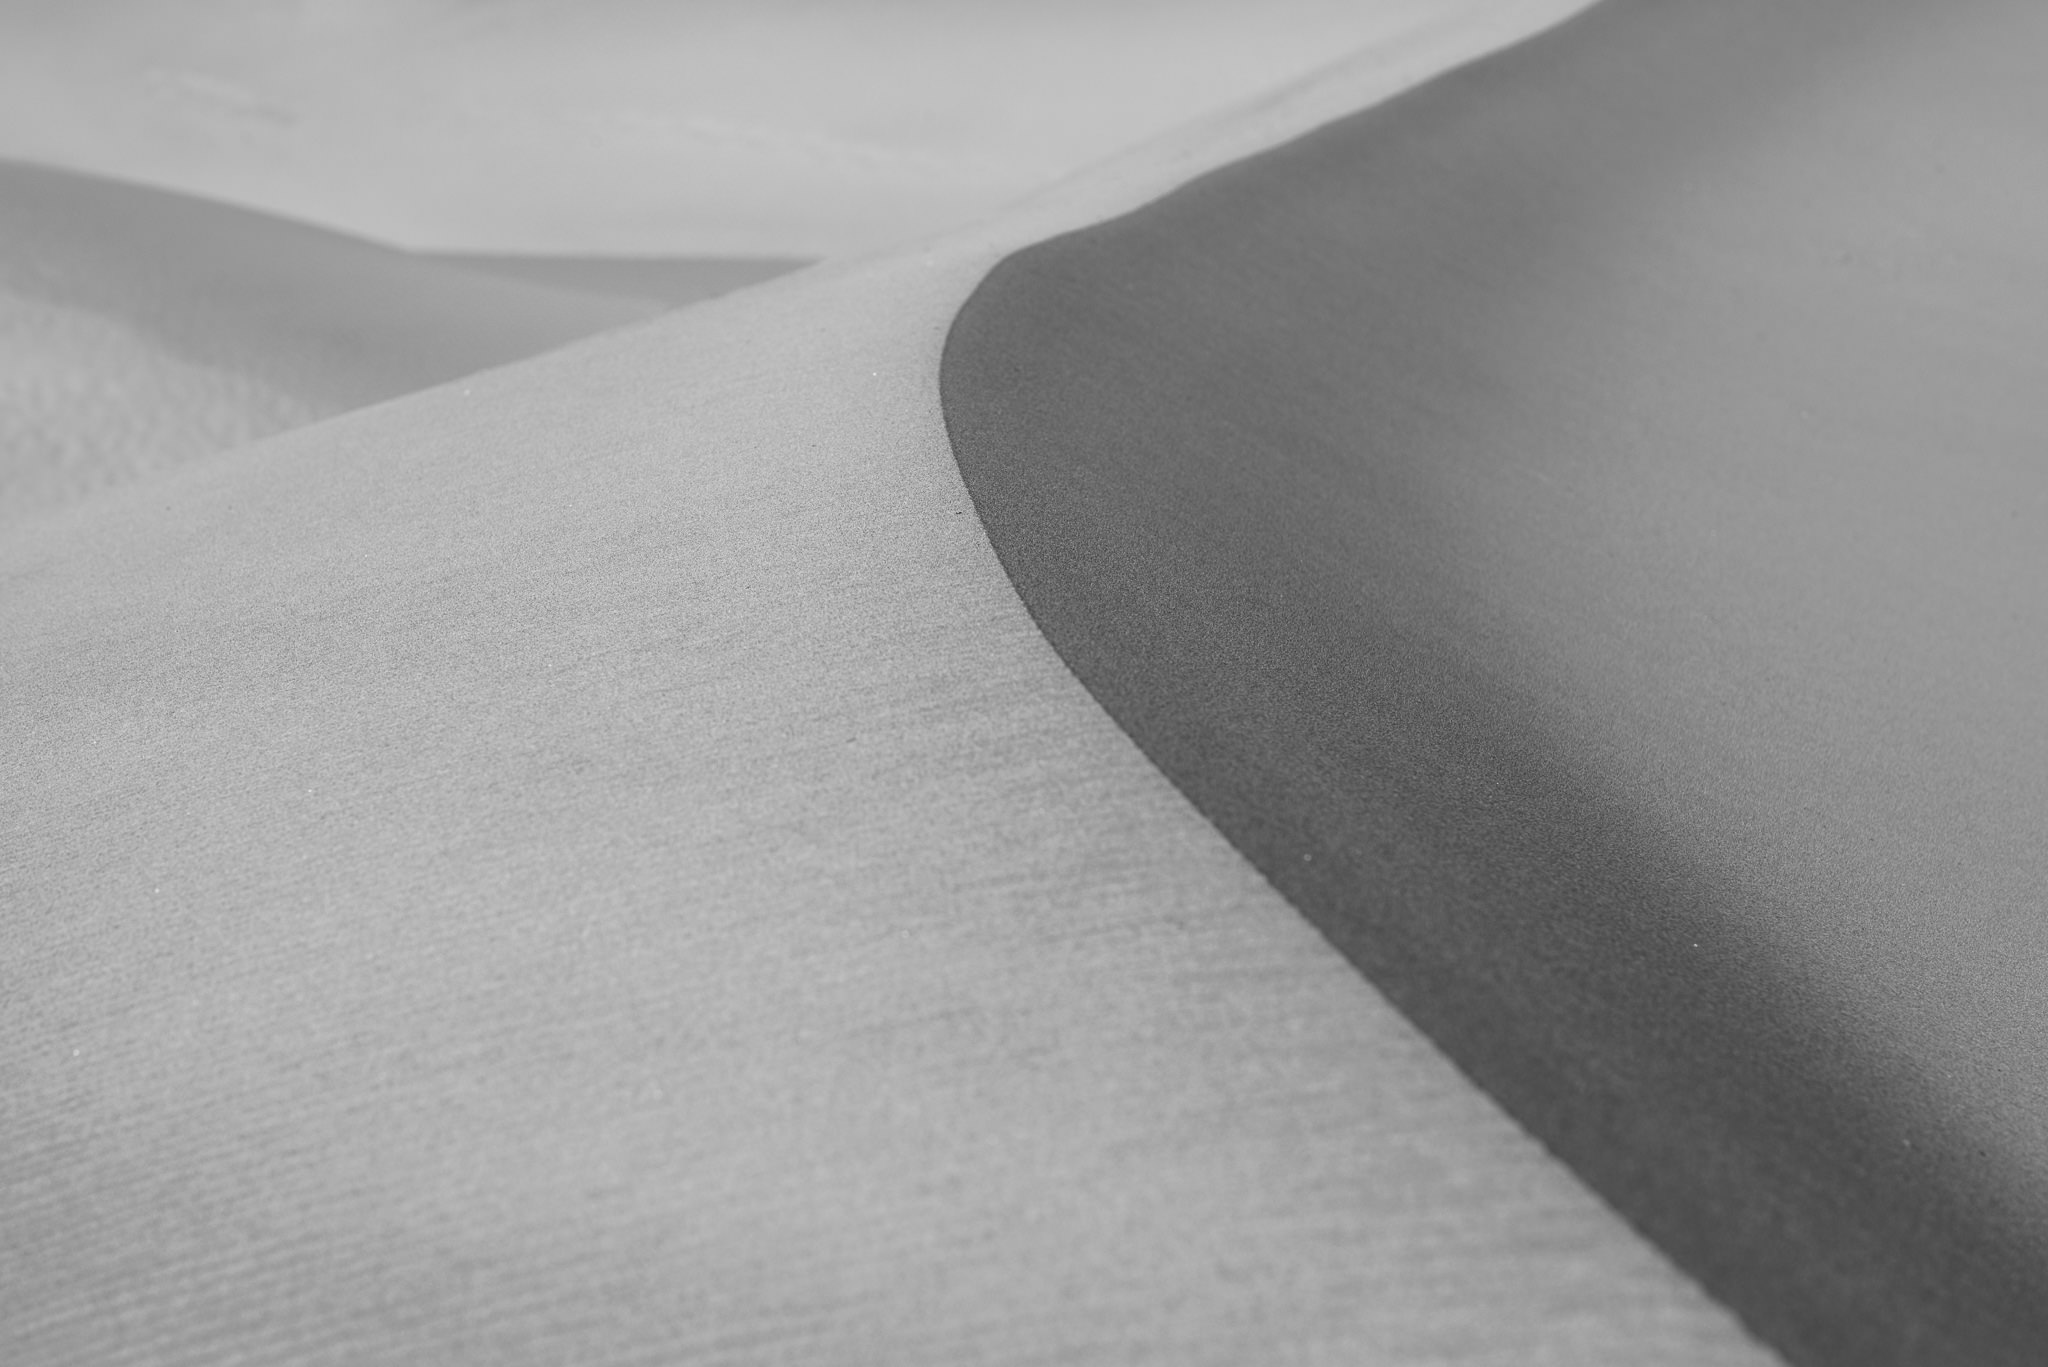 Low contrast sand dunes photo nikon d800e 70 200mm f 4 200mm iso 100 1 160 f 11 0